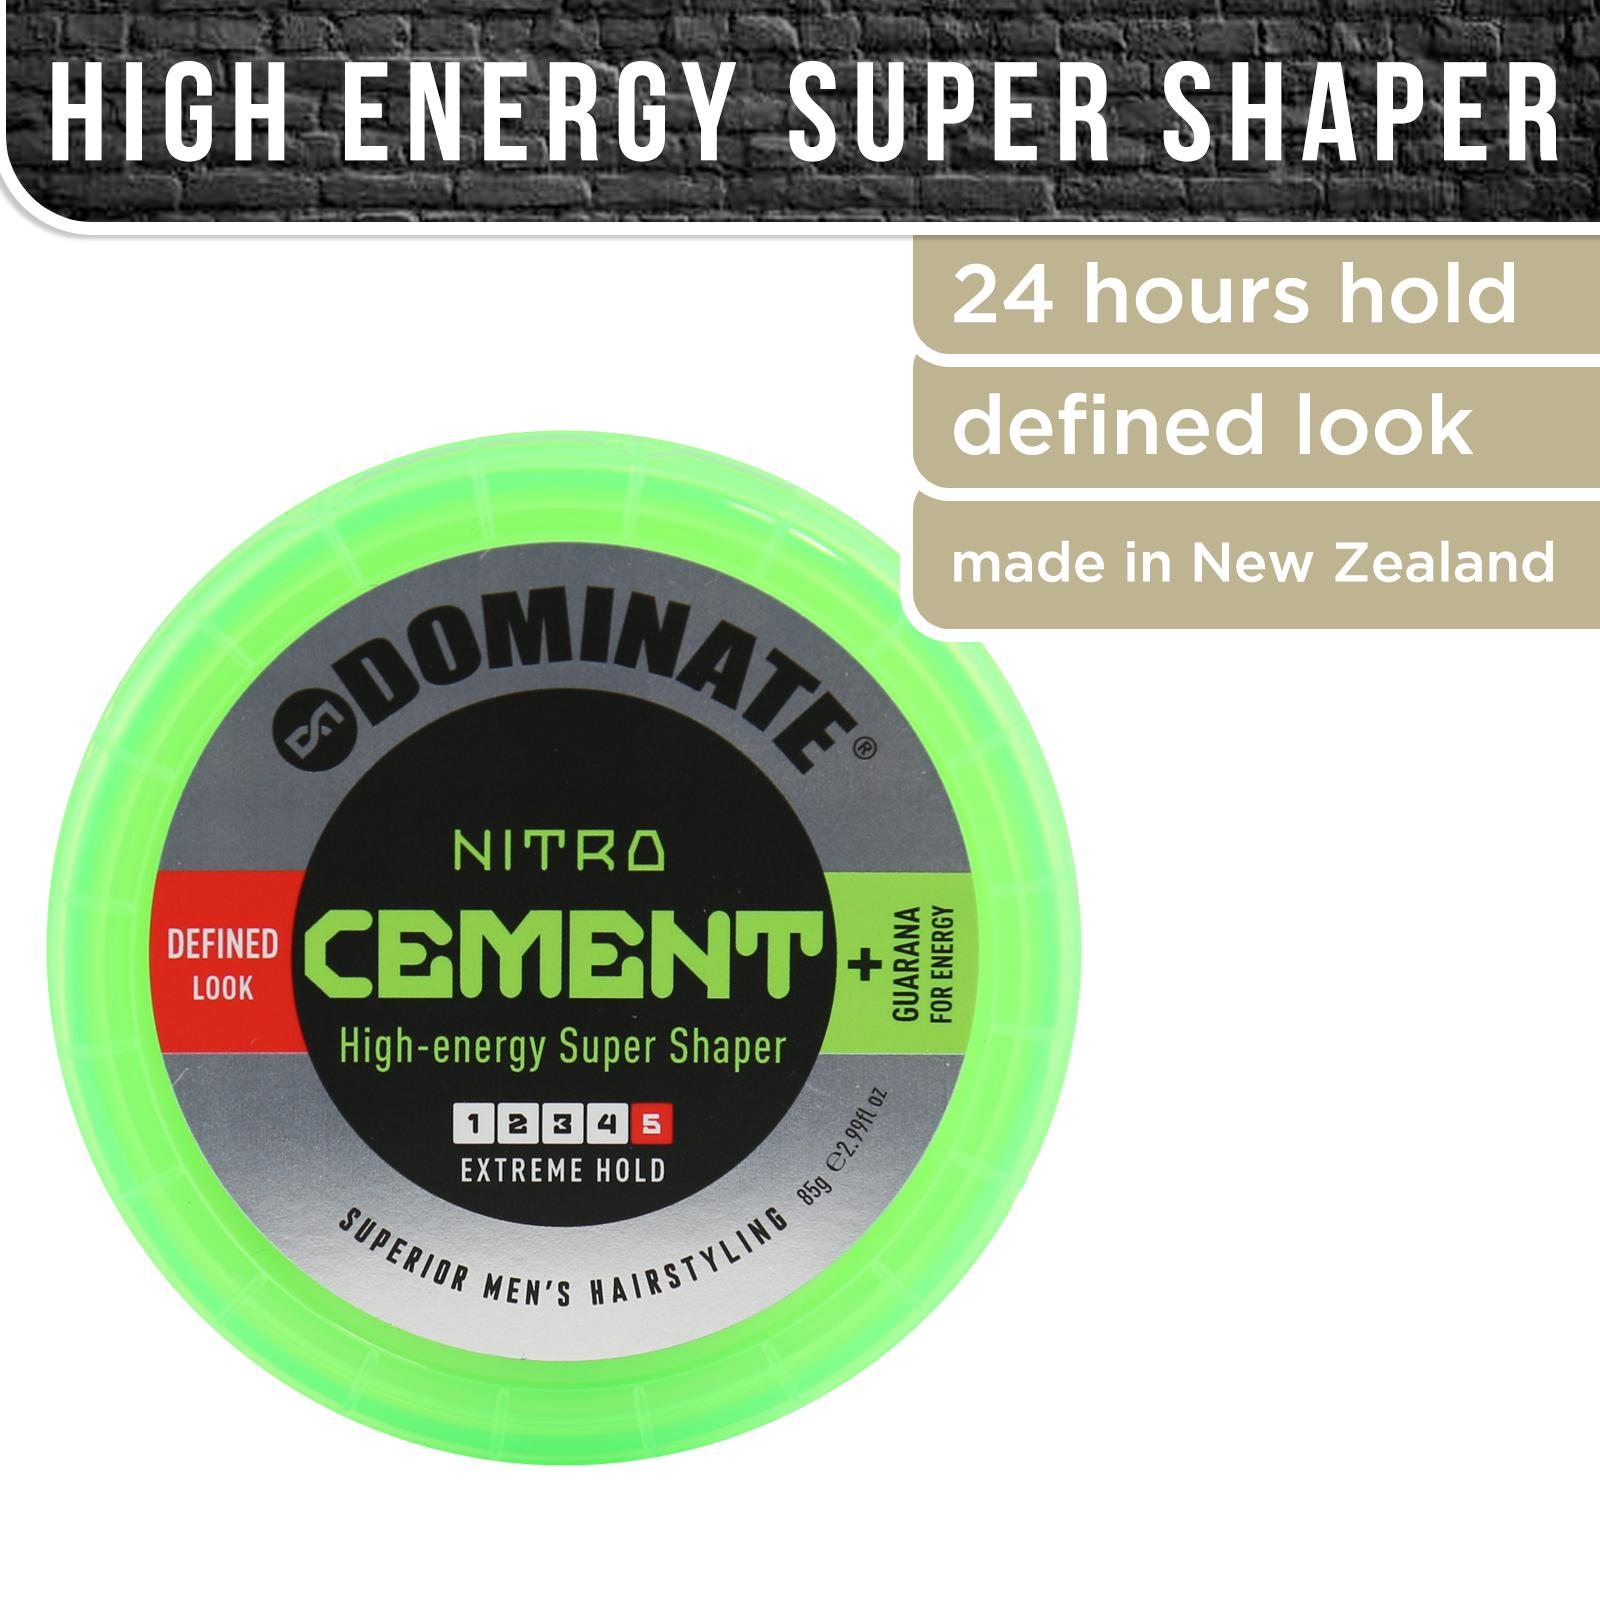 Latest Dominate Men's Hair Styling Products   Enjoy Huge